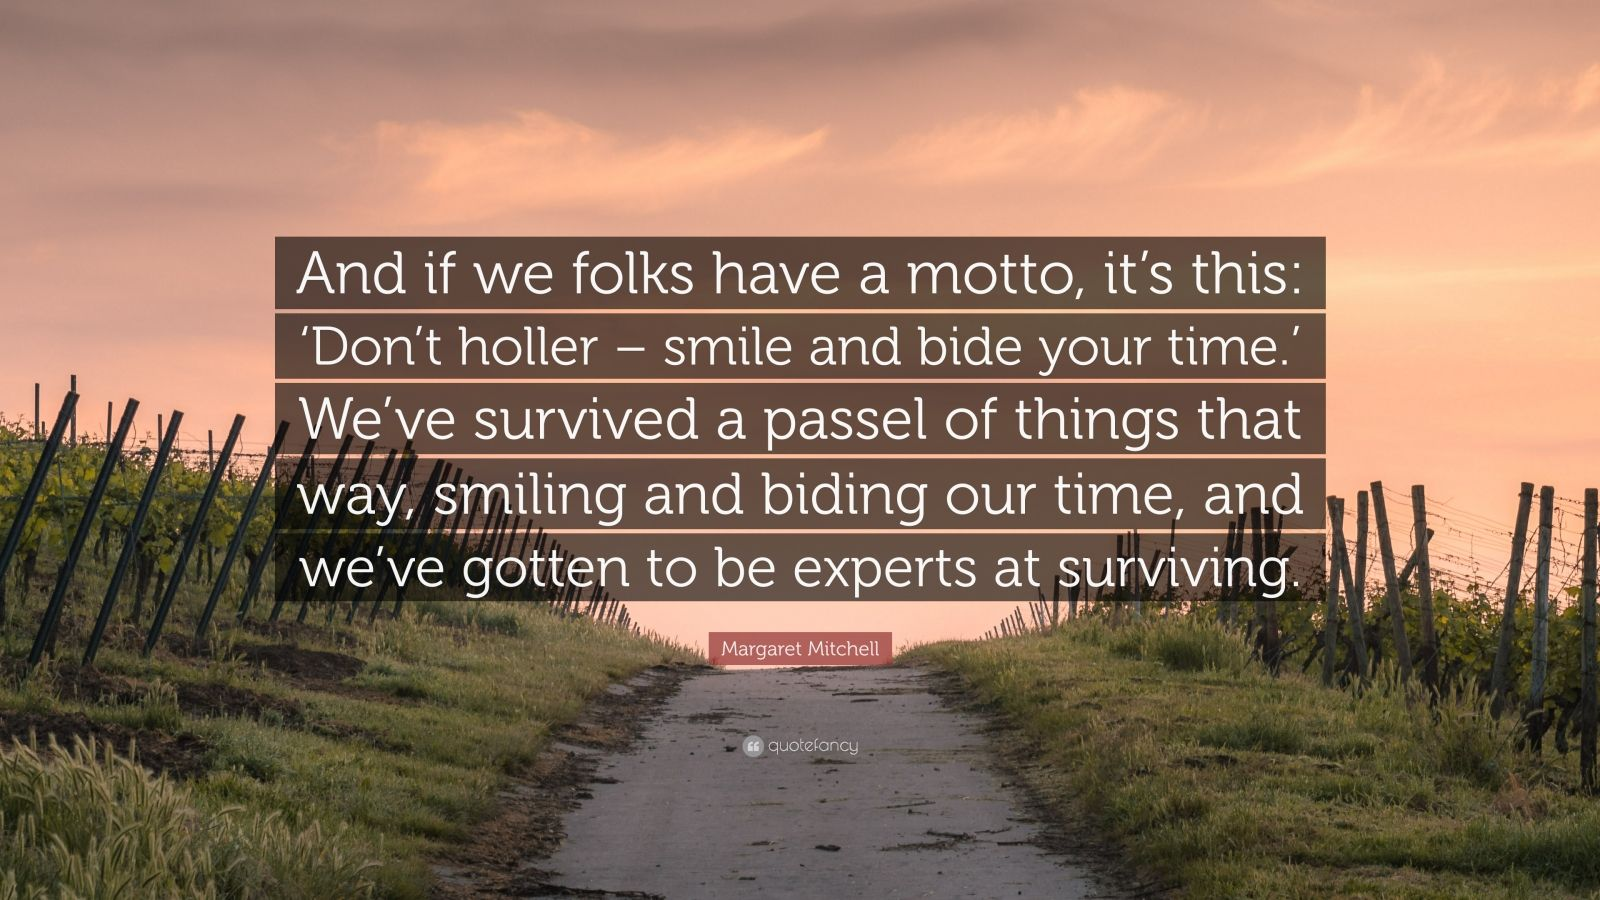 """Margaret Mitchell Quote: """"And if we folks have a motto, it's this: 'Don't holler – smile and bide your time.' We've survived a passel of things that way, smiling and biding our time, and we've gotten to be experts at surviving."""""""